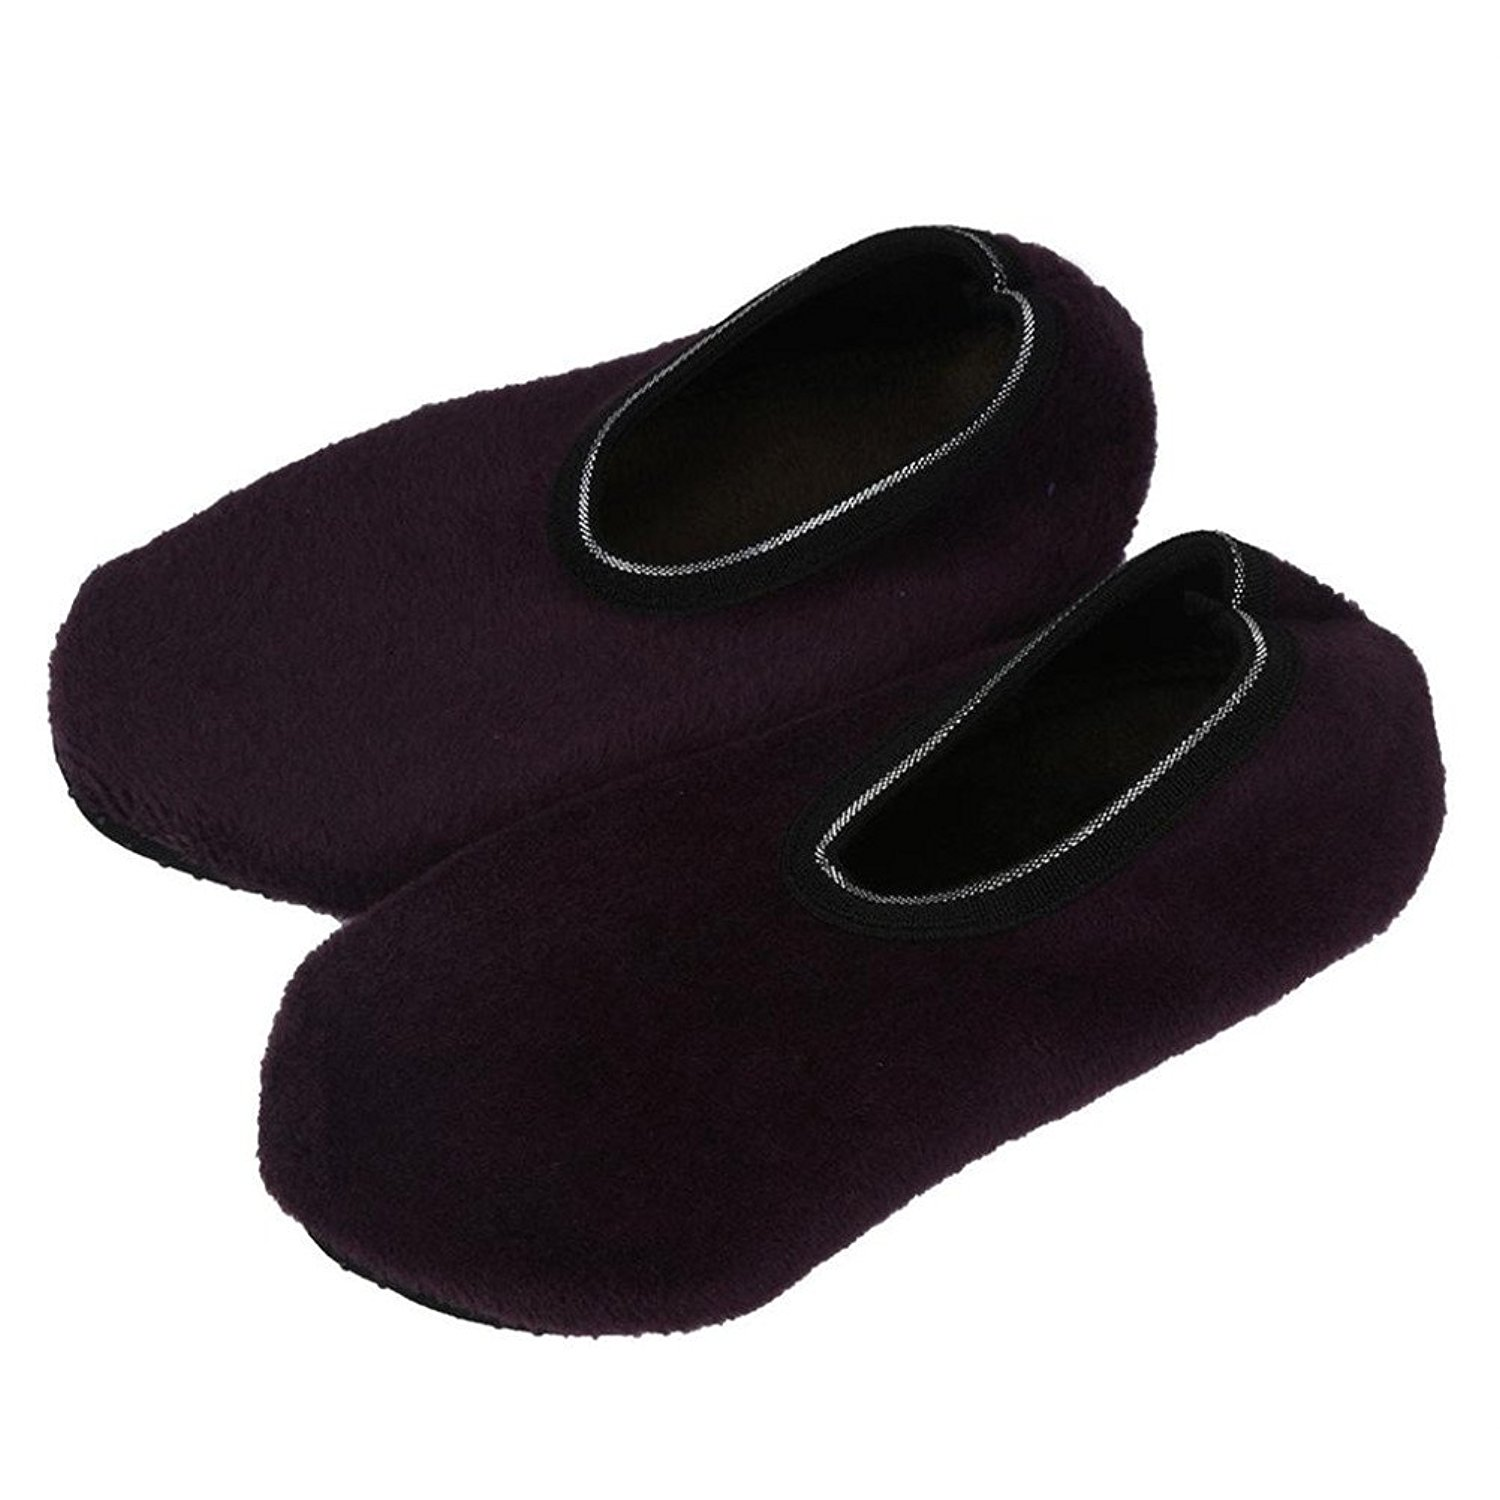 Cheap Baby Slipper Socks Leather Sole find Baby Slipper Socks